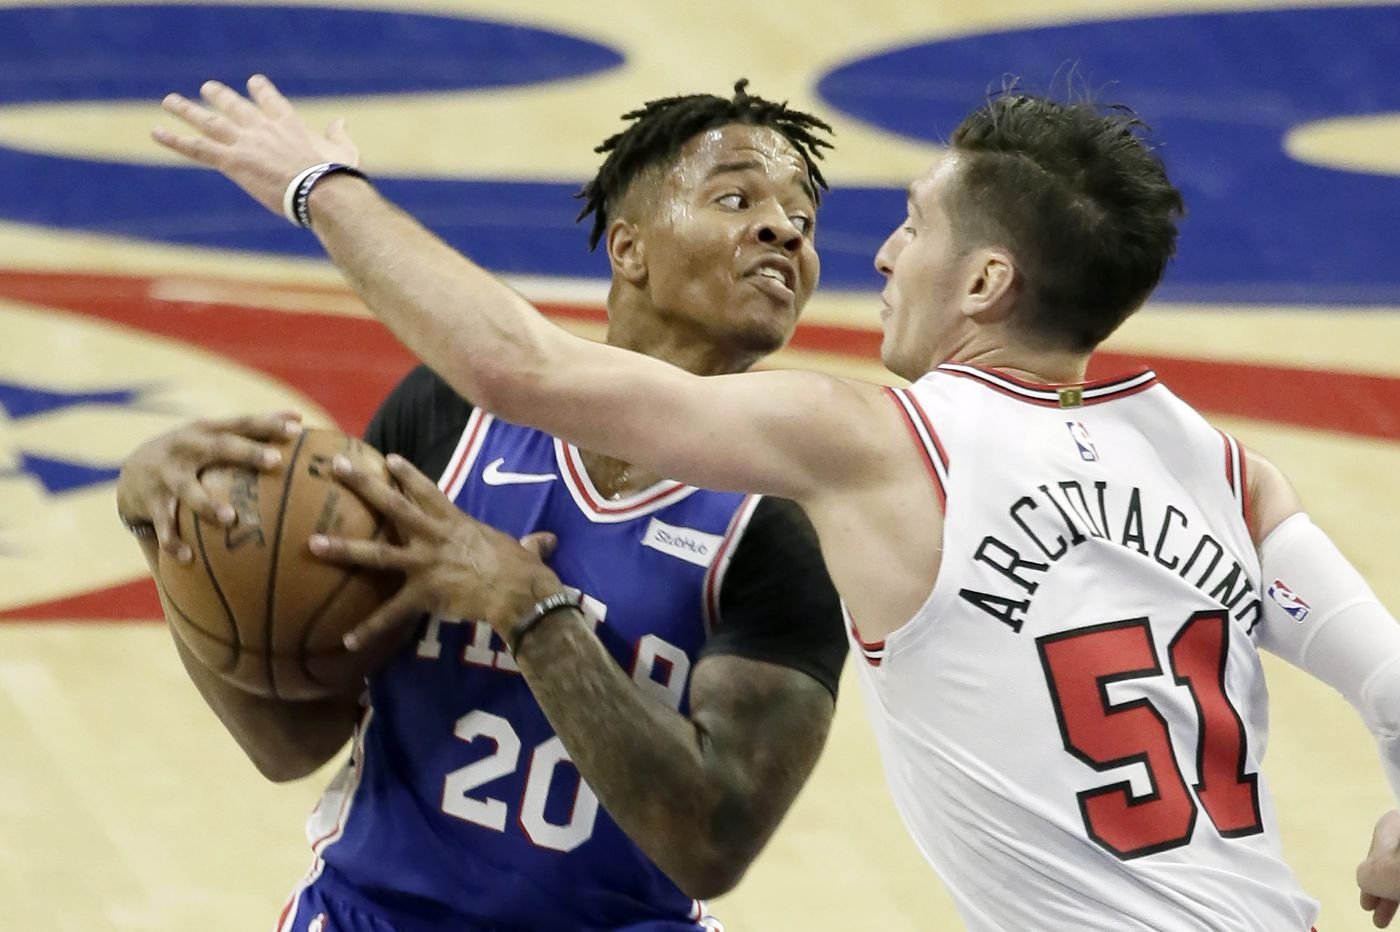 If the Sixers' Markelle Fultz's support system remained intact, how would things have been different?